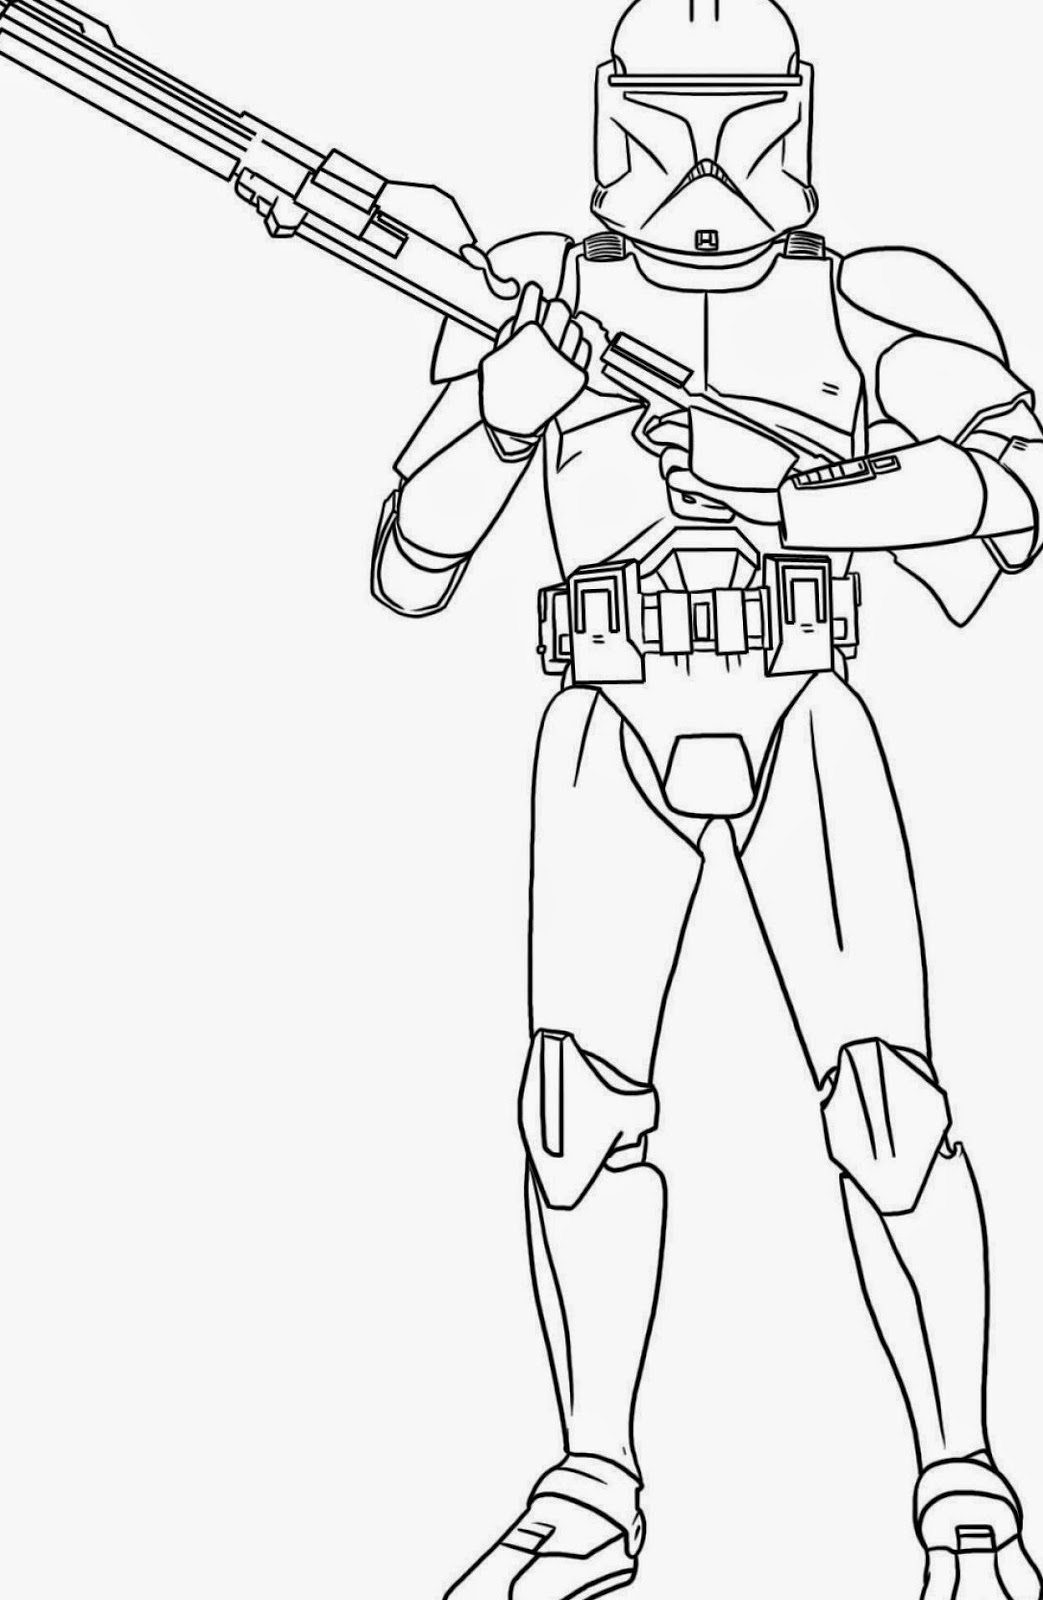 star wars the clone wars pictures to print star wars to color for kids star wars kids coloring pages print clone the star wars pictures wars to